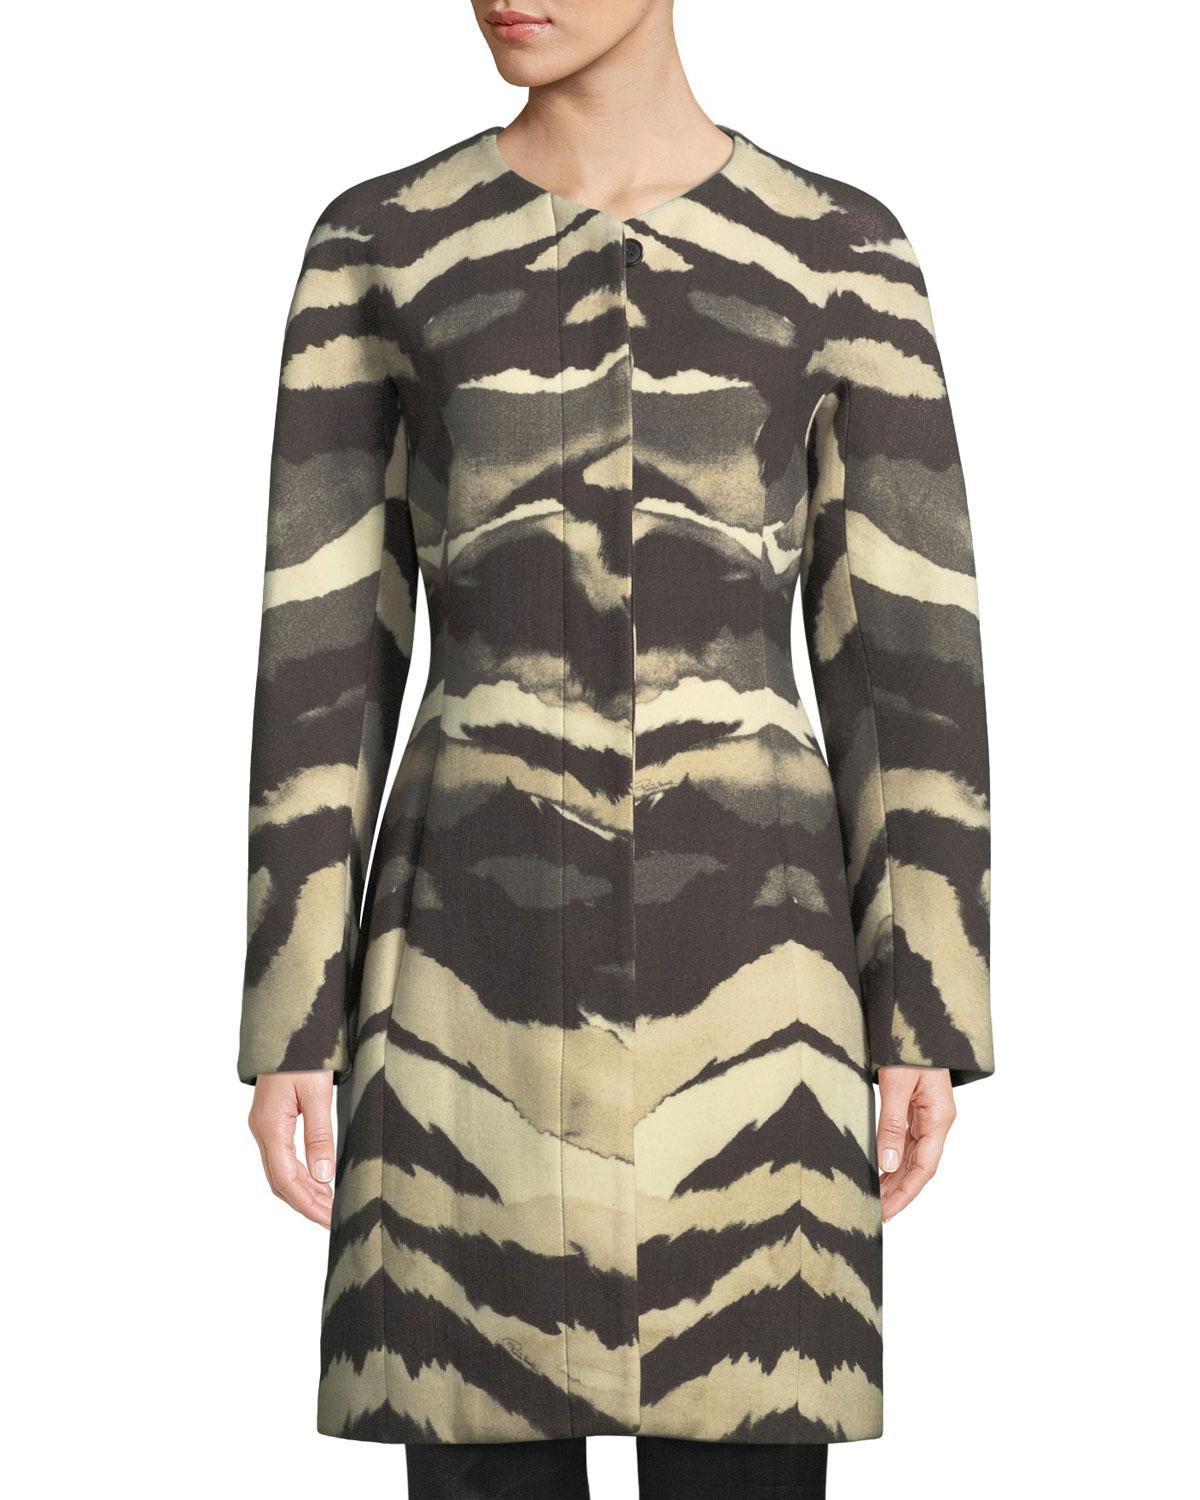 9d18c363fc16 Roberto Cavalli Crewneck Printed Wool Car Coat in Black - Lyst